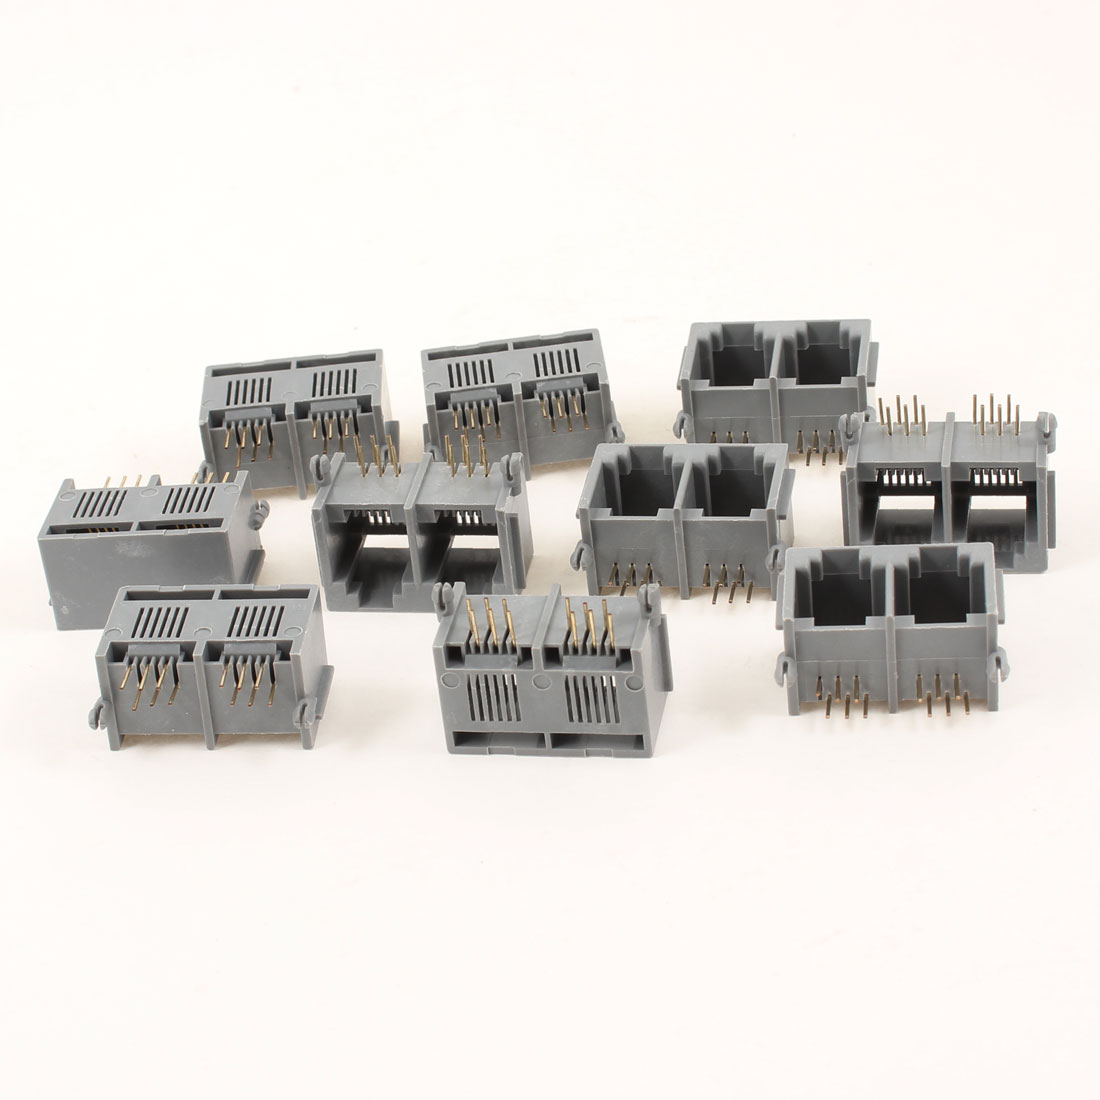 10 Pcs Gray Unshielded Dual Ports RJ12 6P6C Network Modular PCB Jacks Connector